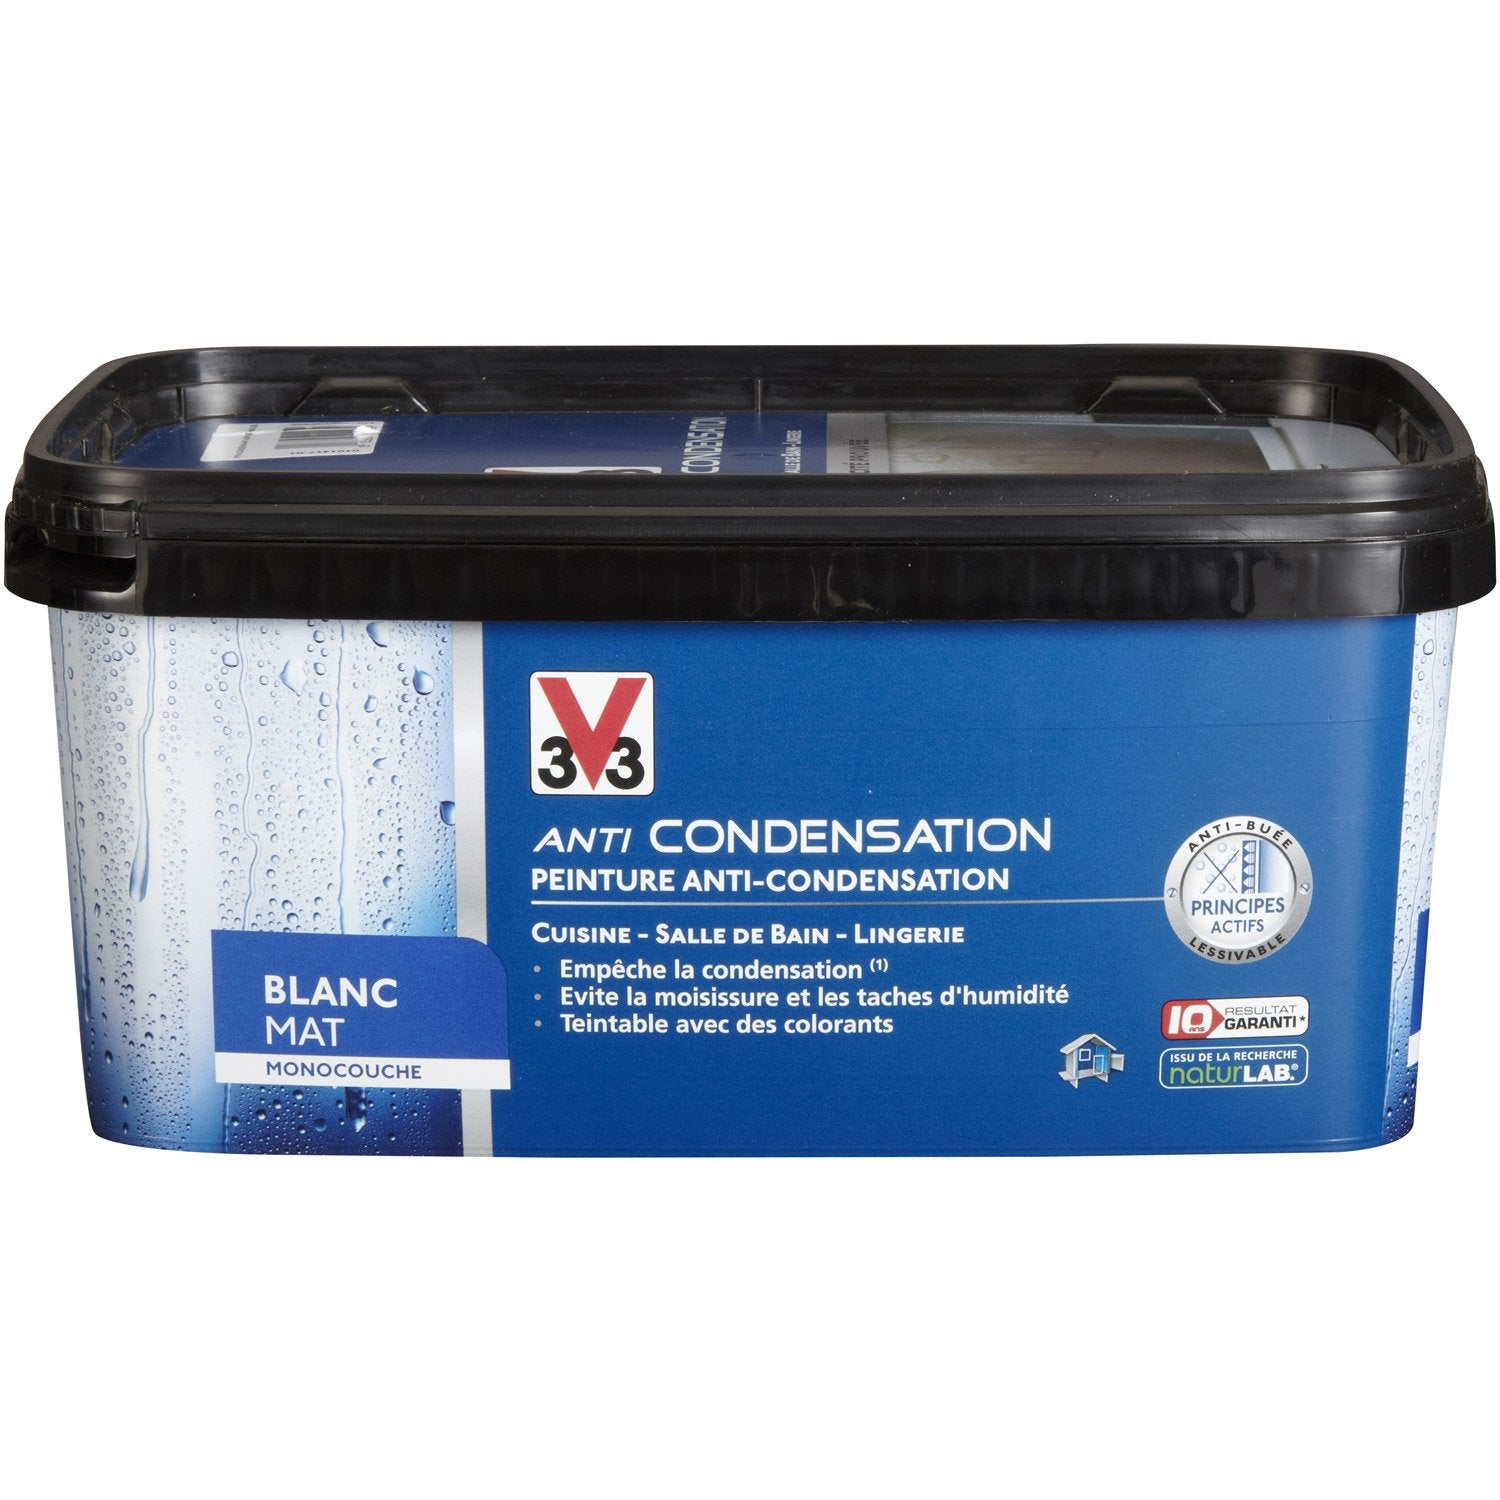 Peinture anticondensation v33 blanc 2 5 l leroy merlin for Peinture anti condensation